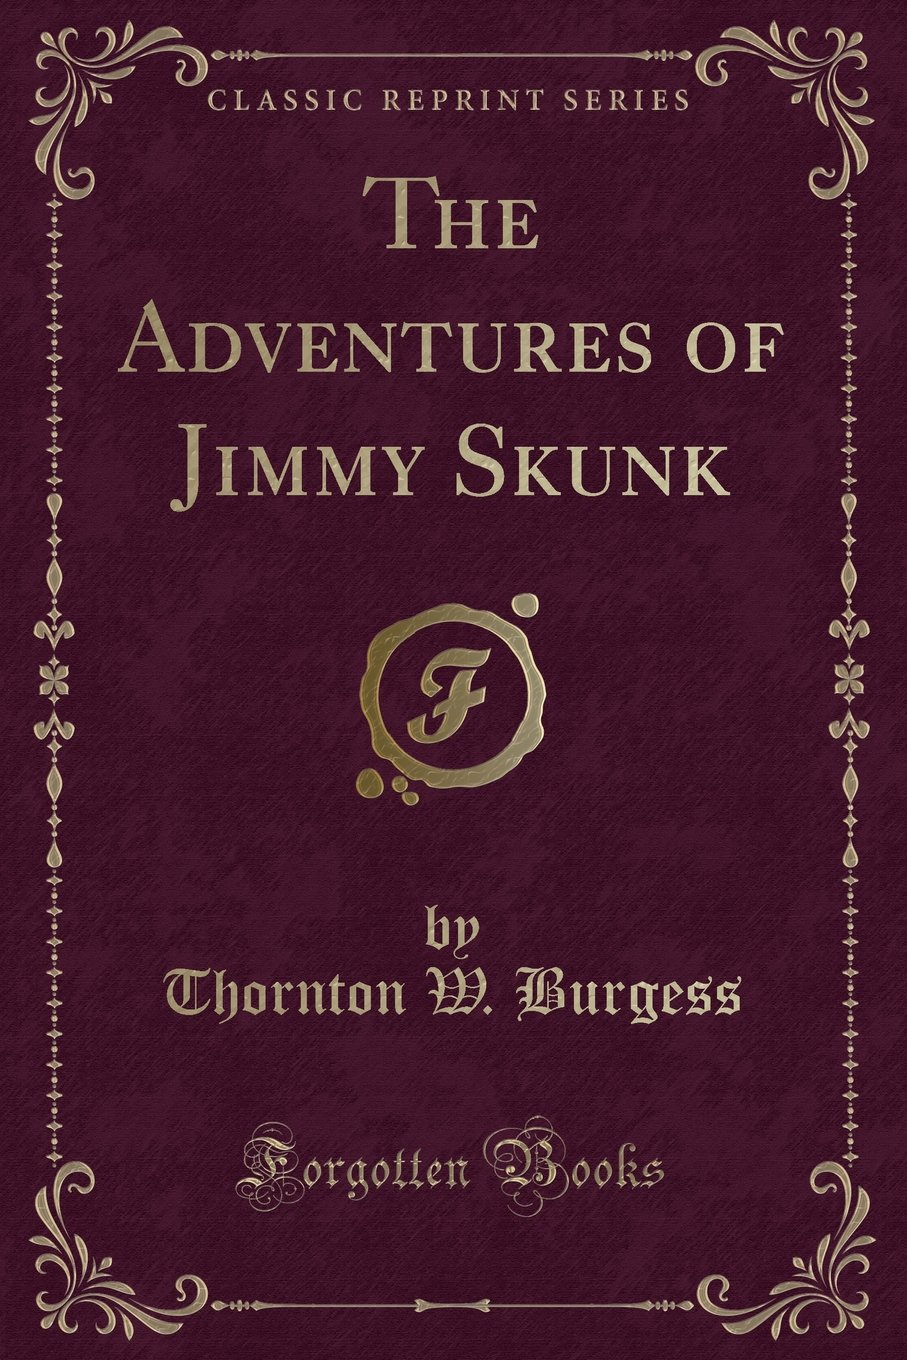 The Adventures of Jimmy Skunk (Dover Childrens Thrift Classics)